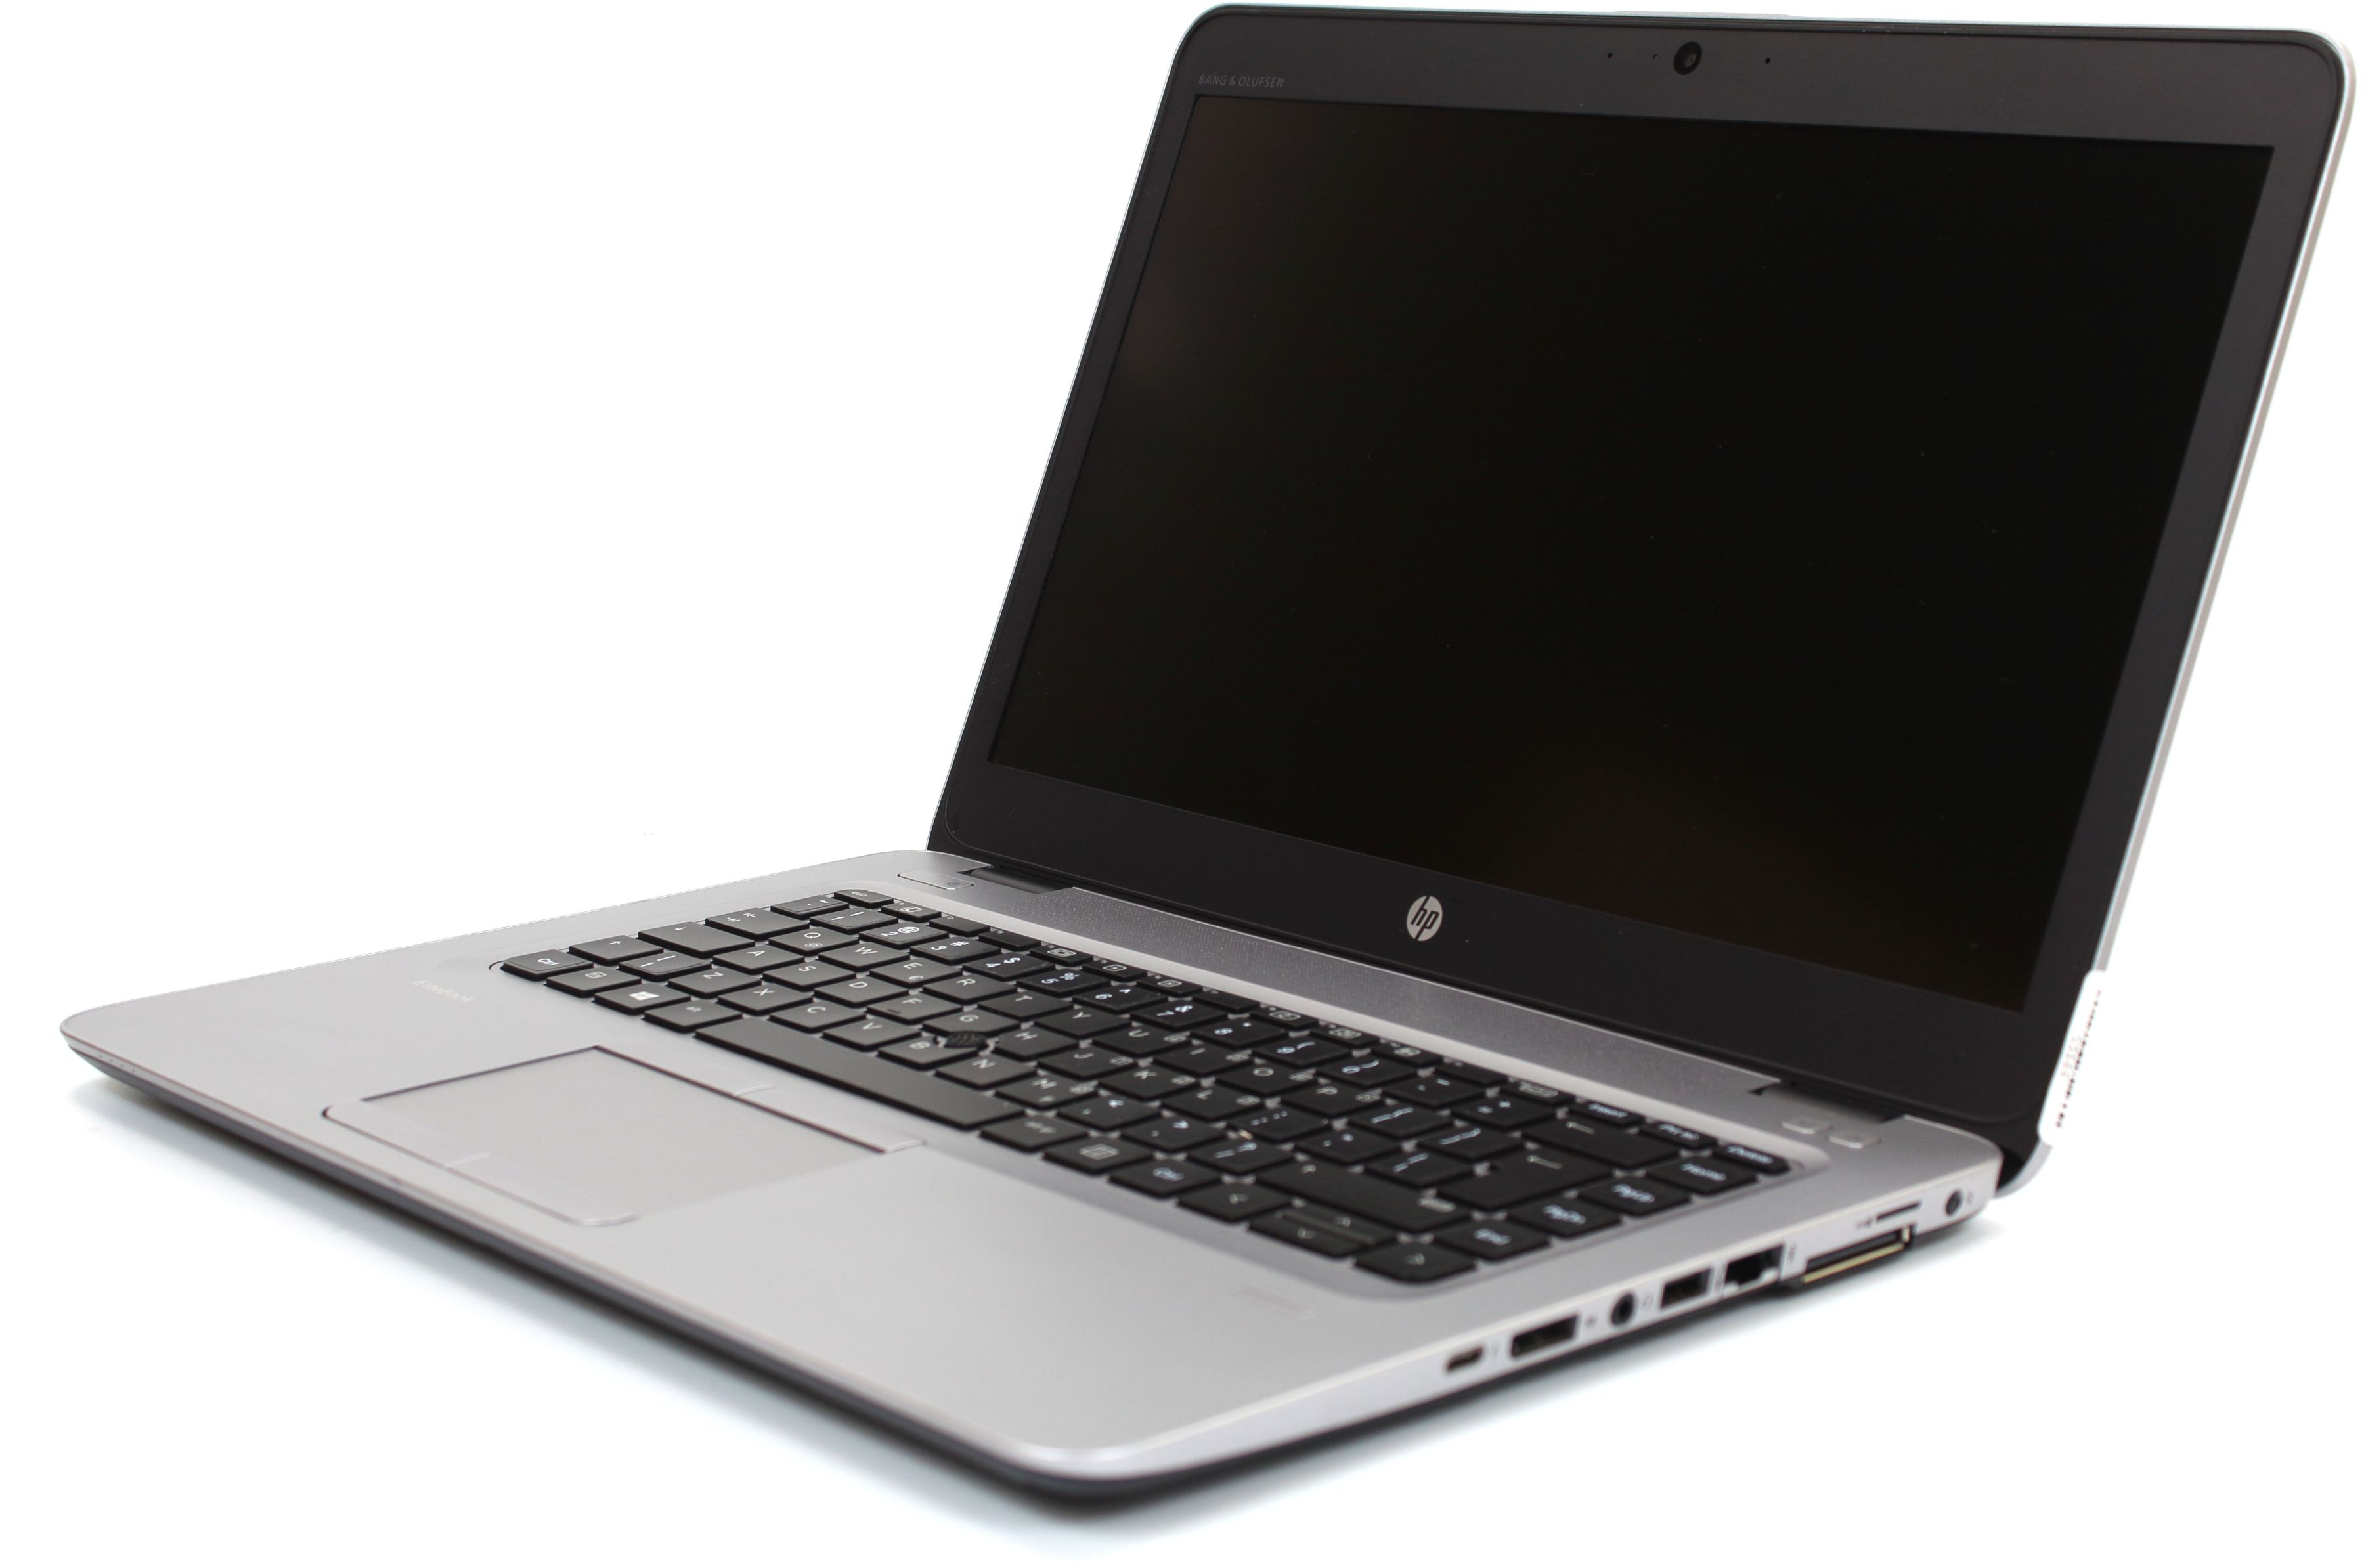 "UltraBook HP EliteBook 745 G3 14.1"" FHD A10-8700B 4x3.20GHz 8GB 256GB SSD KAMERA Windows 7/8/10 Pro (Klasa A-)"